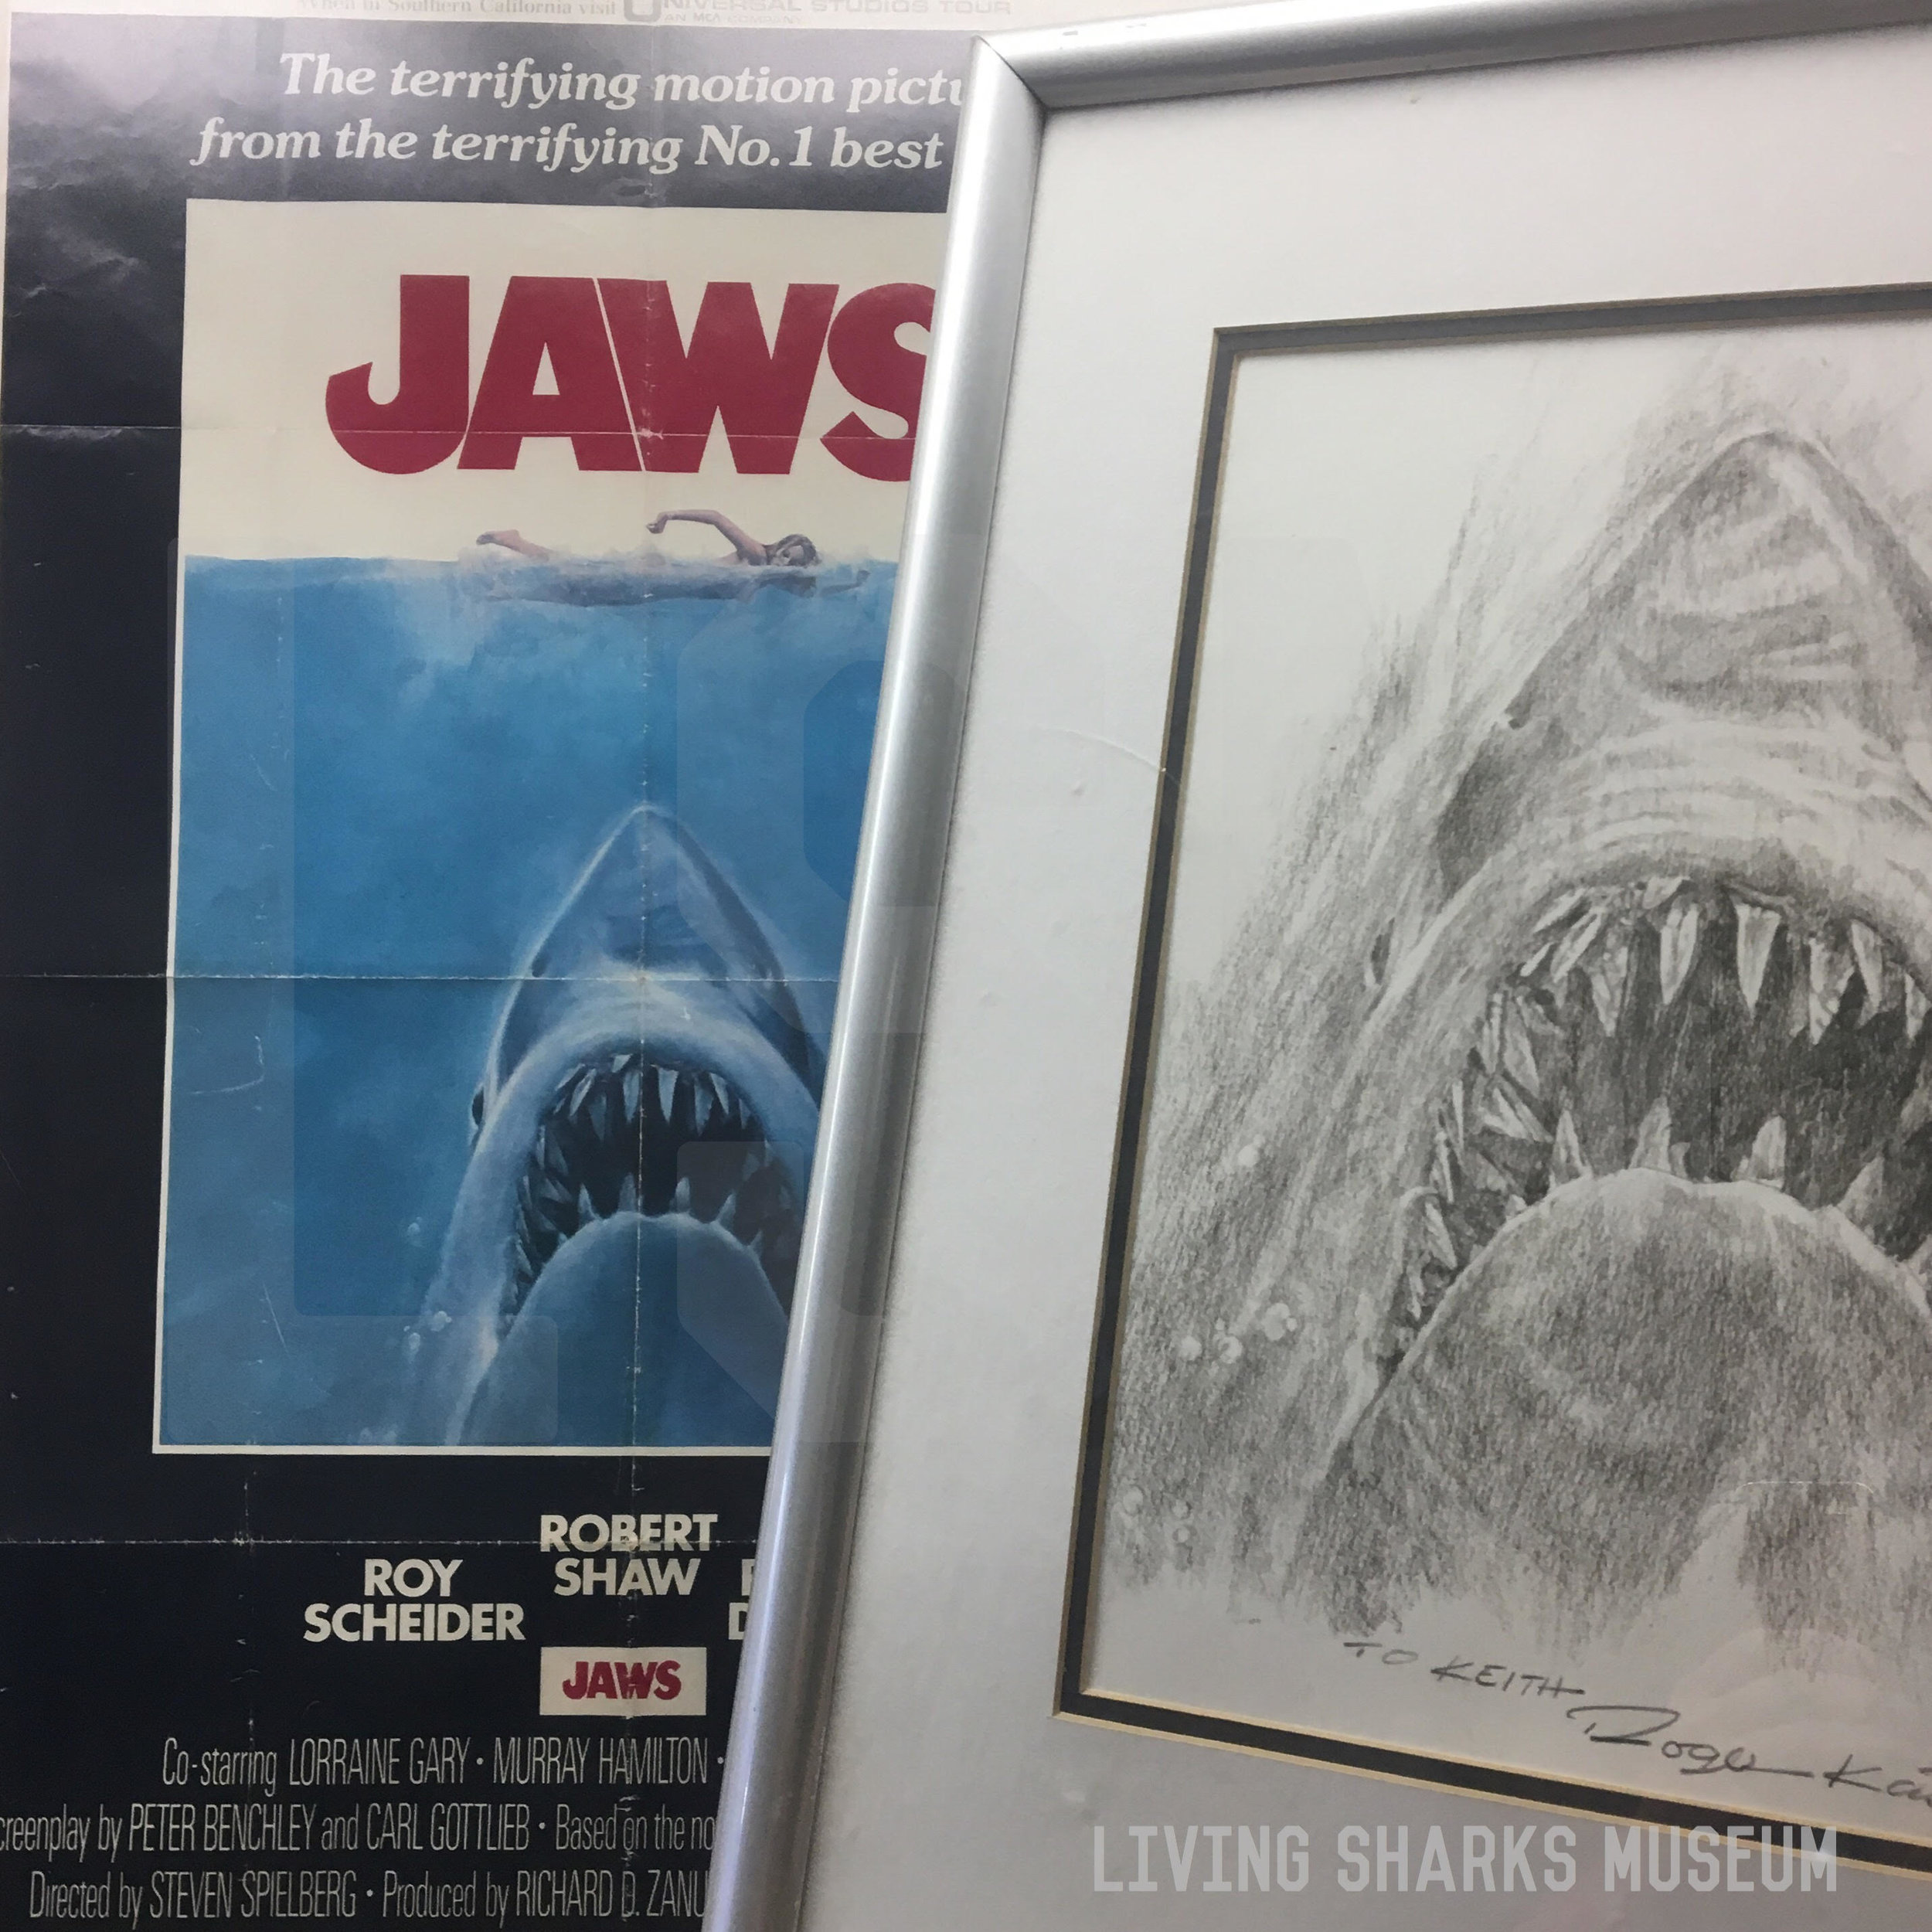 """JAWS THE SHARK - Artist Roger Kastel illustrated one of the most iconic images ever created, the unforgetible ascending maw of the shark. Printed on the original one sheet poster for the film's release in 1975, the actual painting has gone missing. Kastel was commissioned for a a meager sum with low expectations of the film's success. Additionally he was never contracted royalties for its use, which would have unknowingly made him incredibly wealthy.Autographed to the Curator is Roger Kastel's pencil rendition of his memorable poster art, acquired in person during a convention appearance._____________________ORIGINAL JAWS MOVIE POSTER 27""""x 41""""KASTEL AUTOGRAPHED PENCIL PRINTPrivate Collection - Keith M. Cowley"""